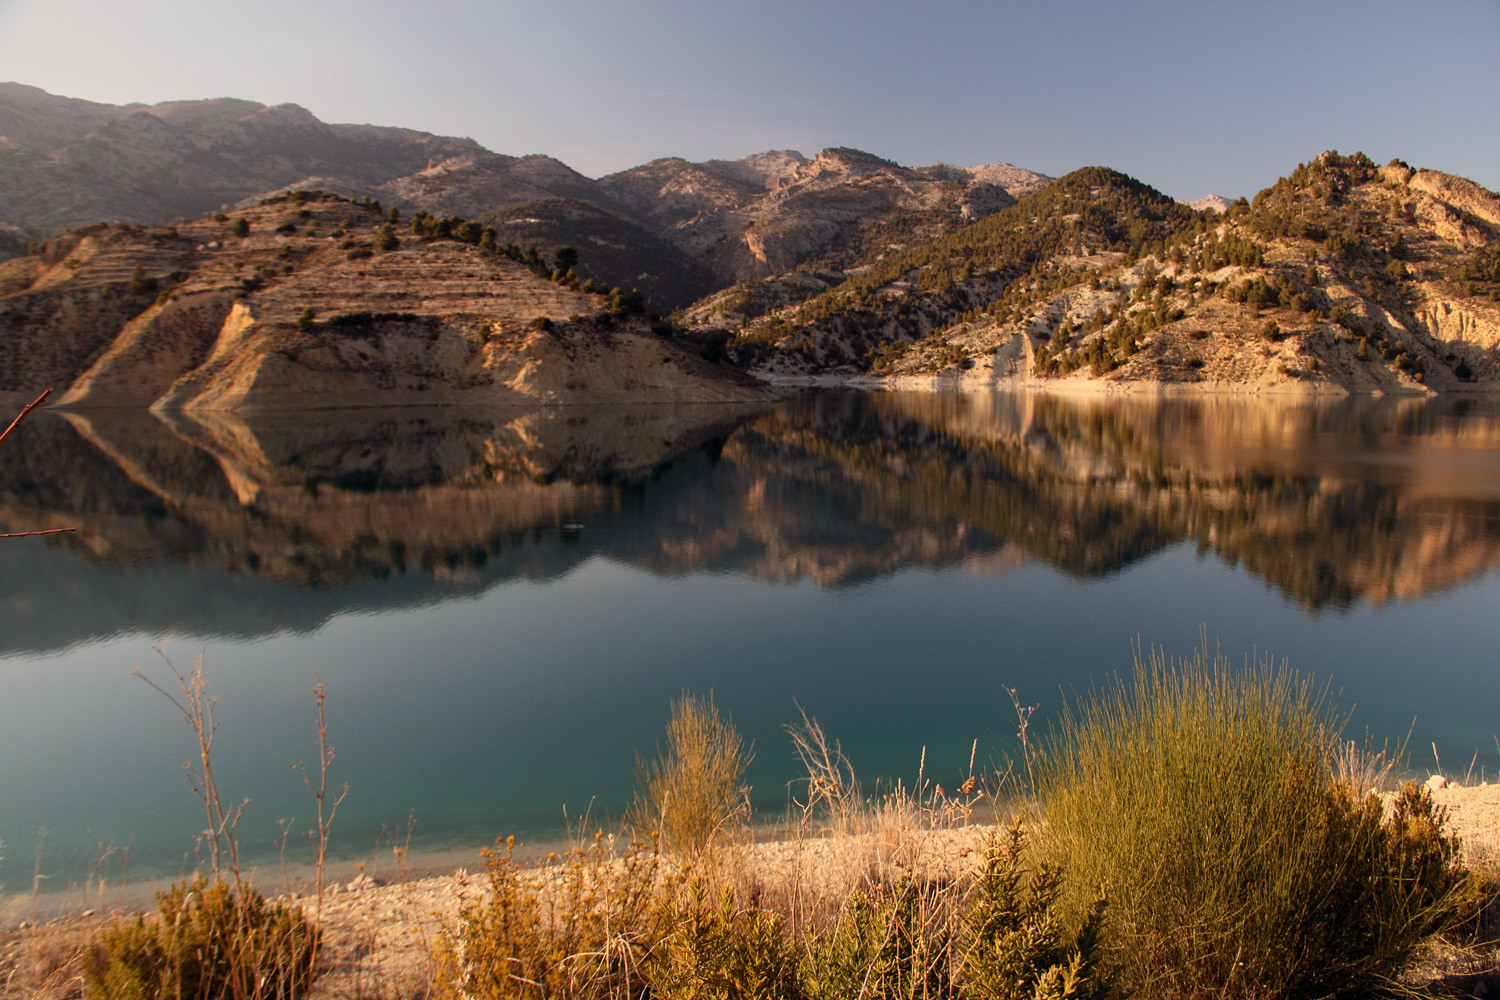 """Embalse de Portillo"" - PN Sierra de Castril, Granada - L01979"